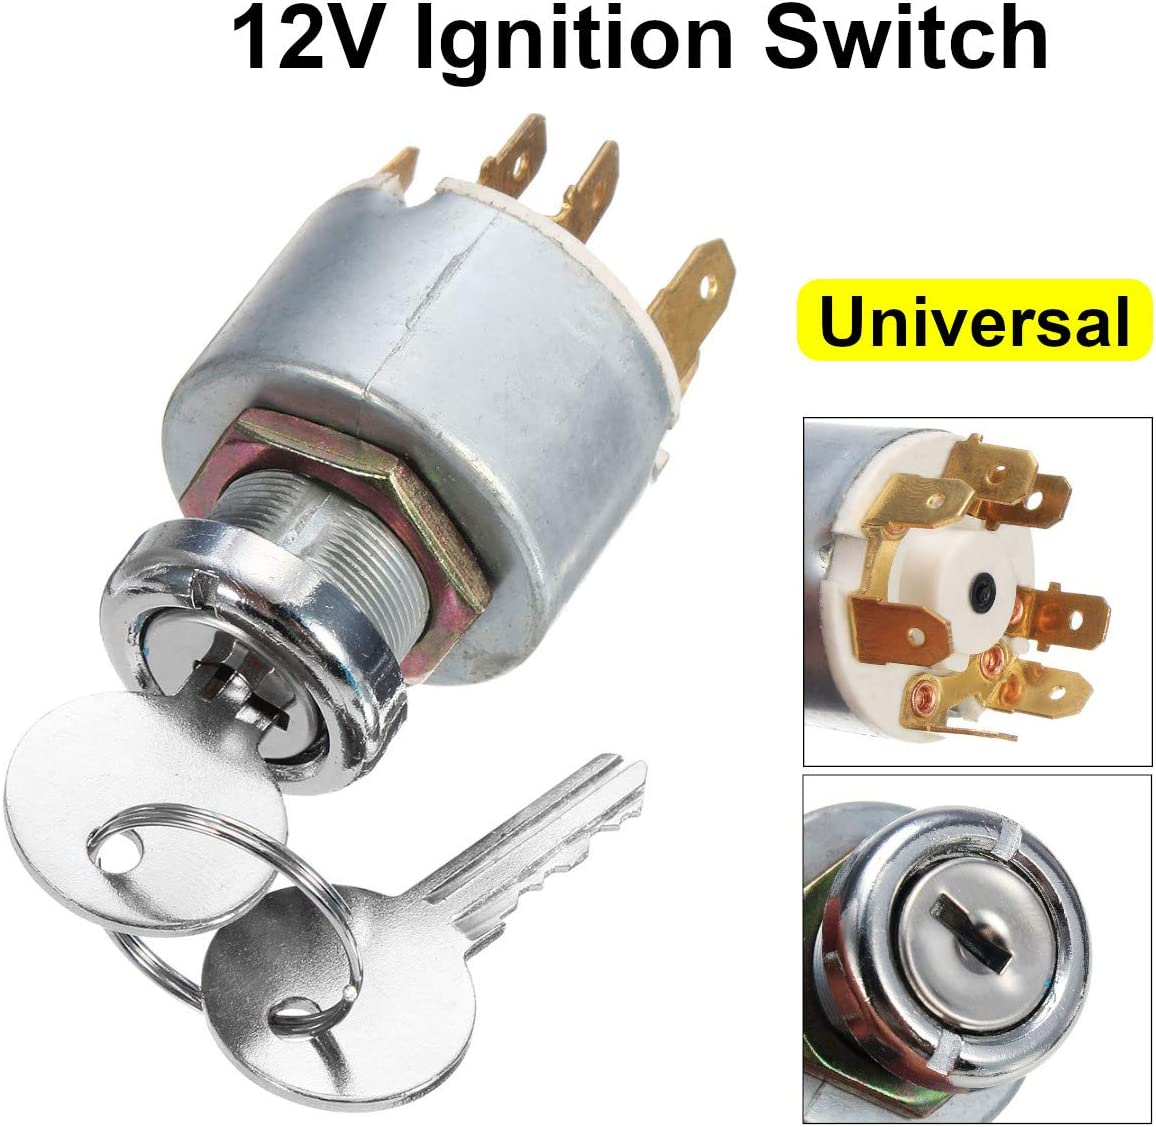 12V 4 Position Universal Car Ignition Max Outlet sale feature 66% OFF Boat Motorcycle Lock Cylin